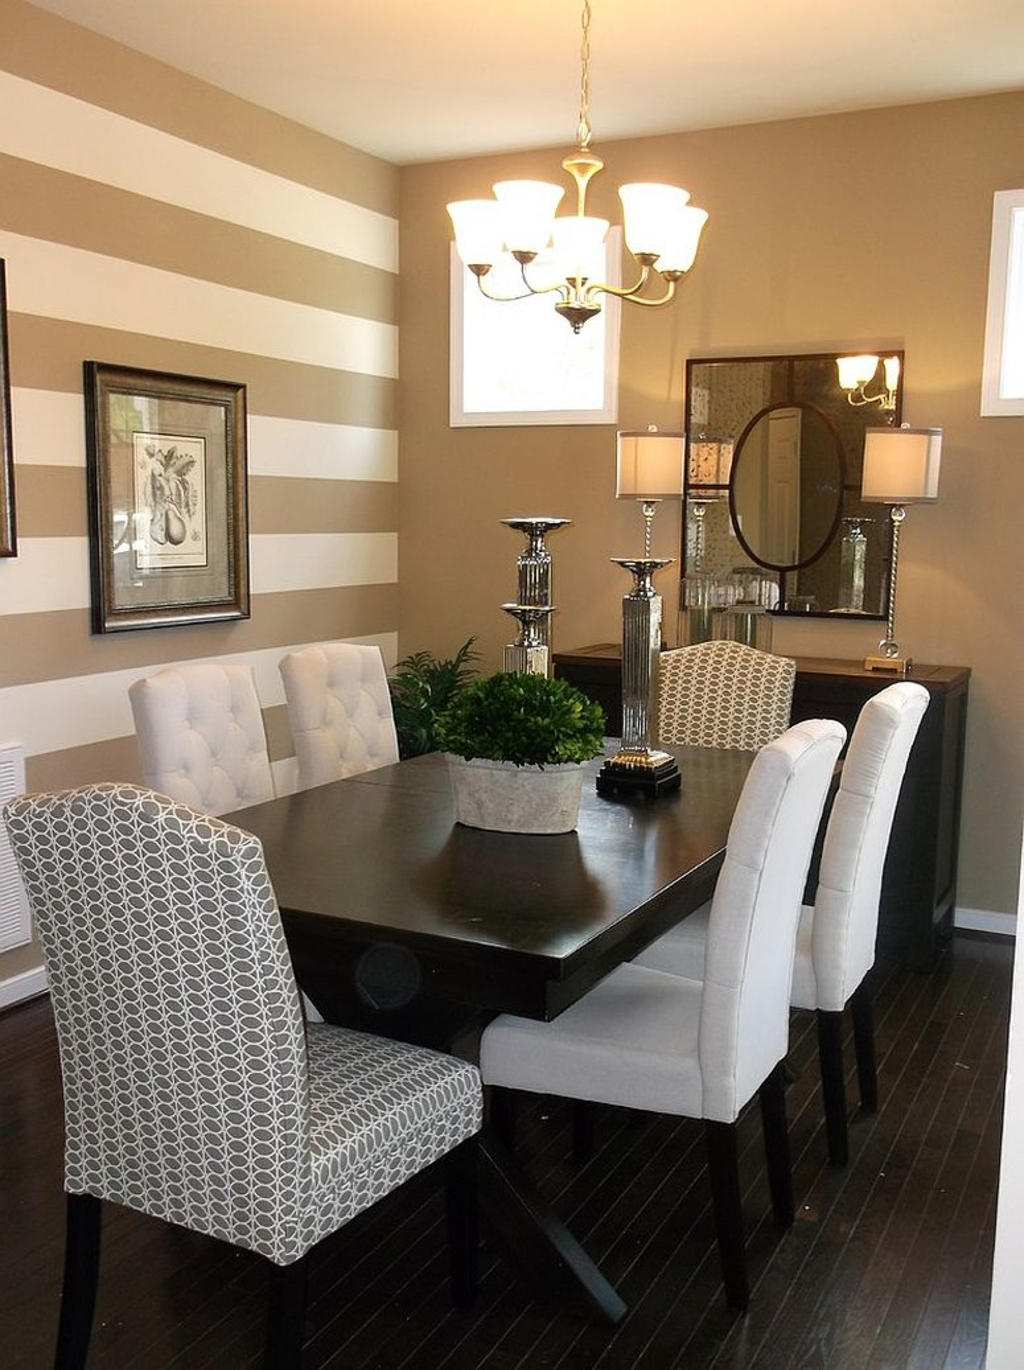 Traditional Dining Room Wall Decor Ideas – Utnavi Throughout Recent Dining Room Wall Accents (View 15 of 15)